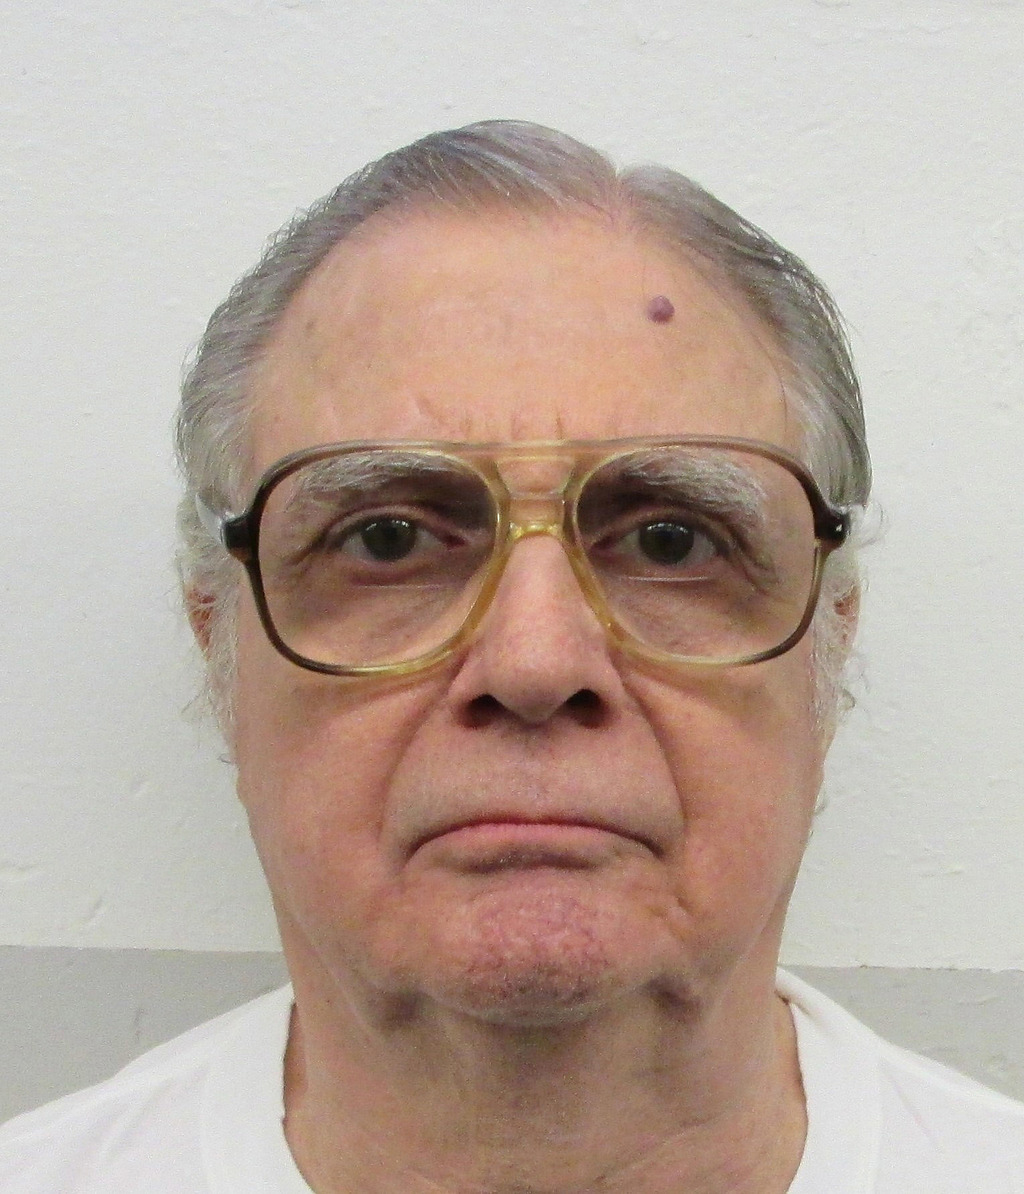 'They are going to kill me': Inmate fights to halt execution